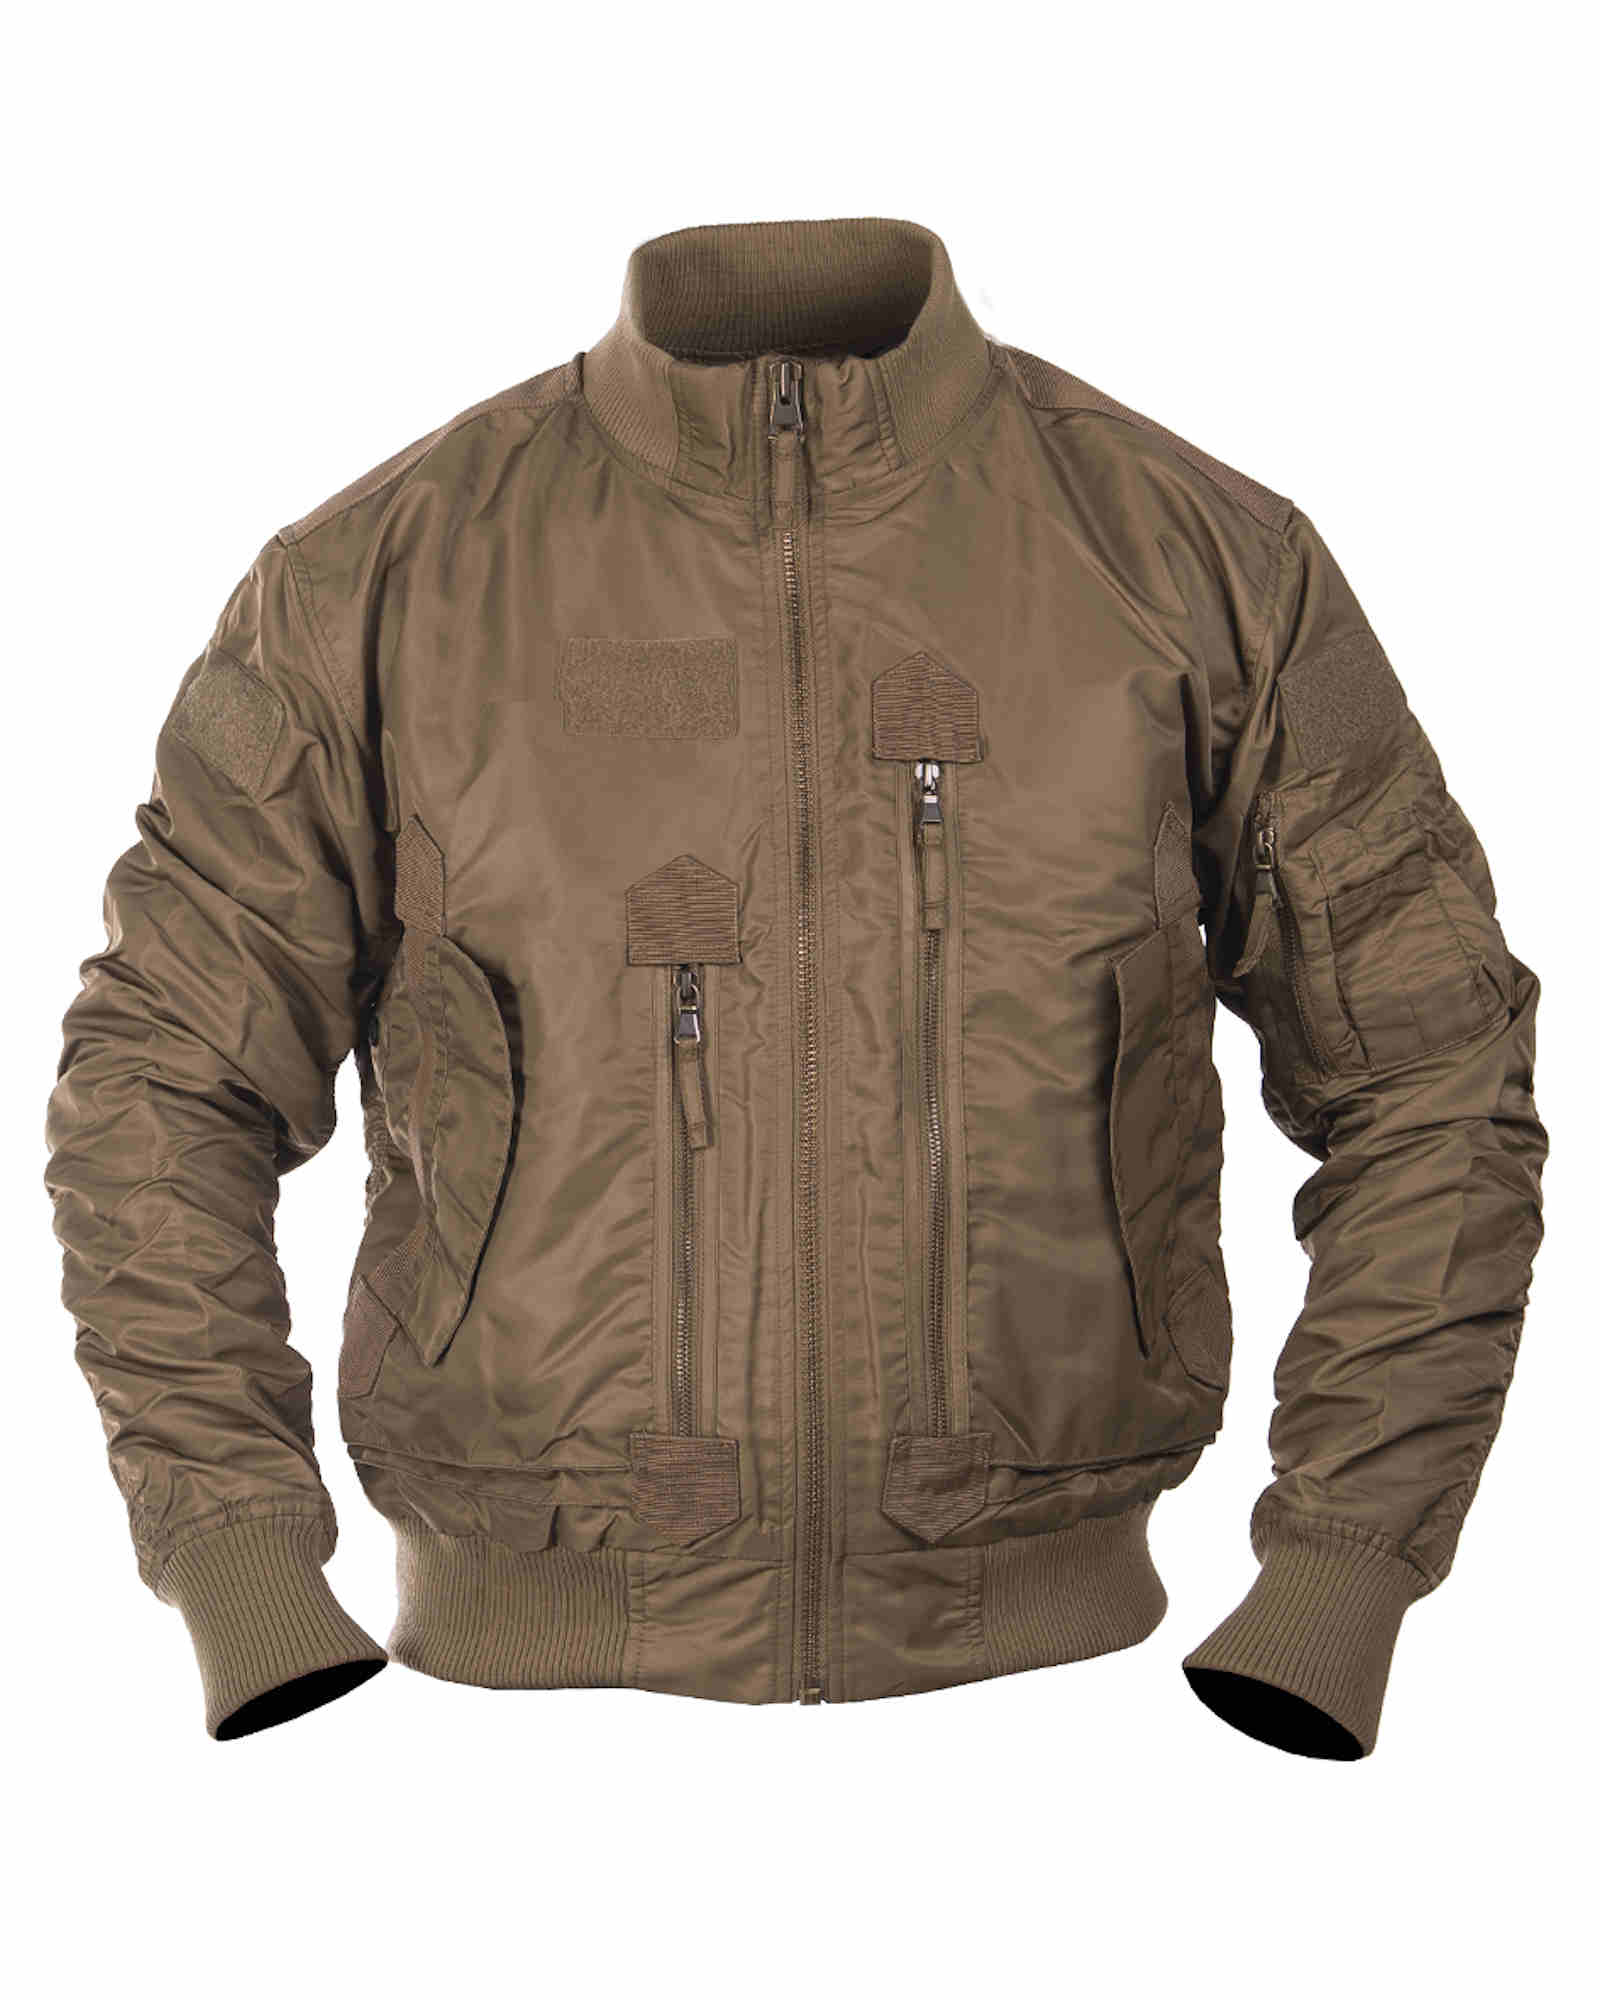 Mil-Tec US TACTICAL FLIEGERJACKE OLIV Outdoorjacke Jacke